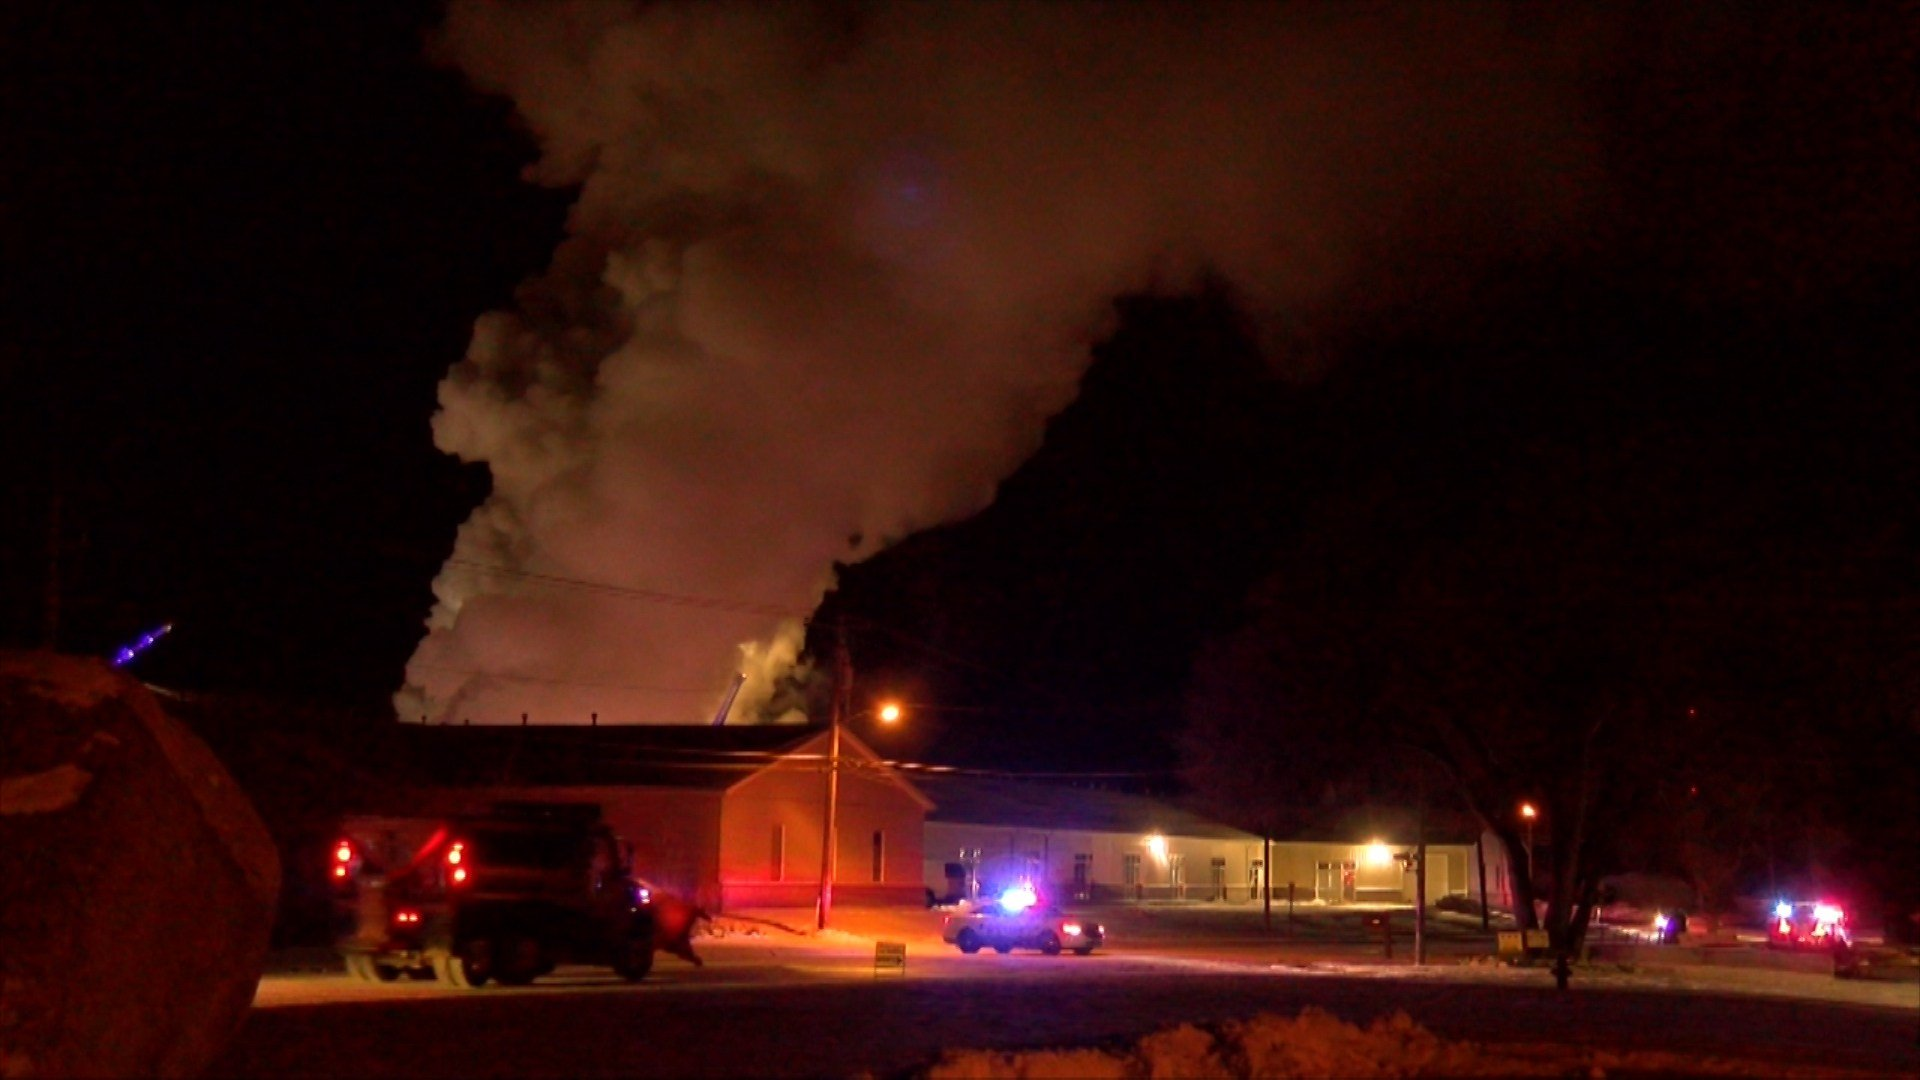 Firefighter injured fighting Tuesday night structure fire in Lincoln